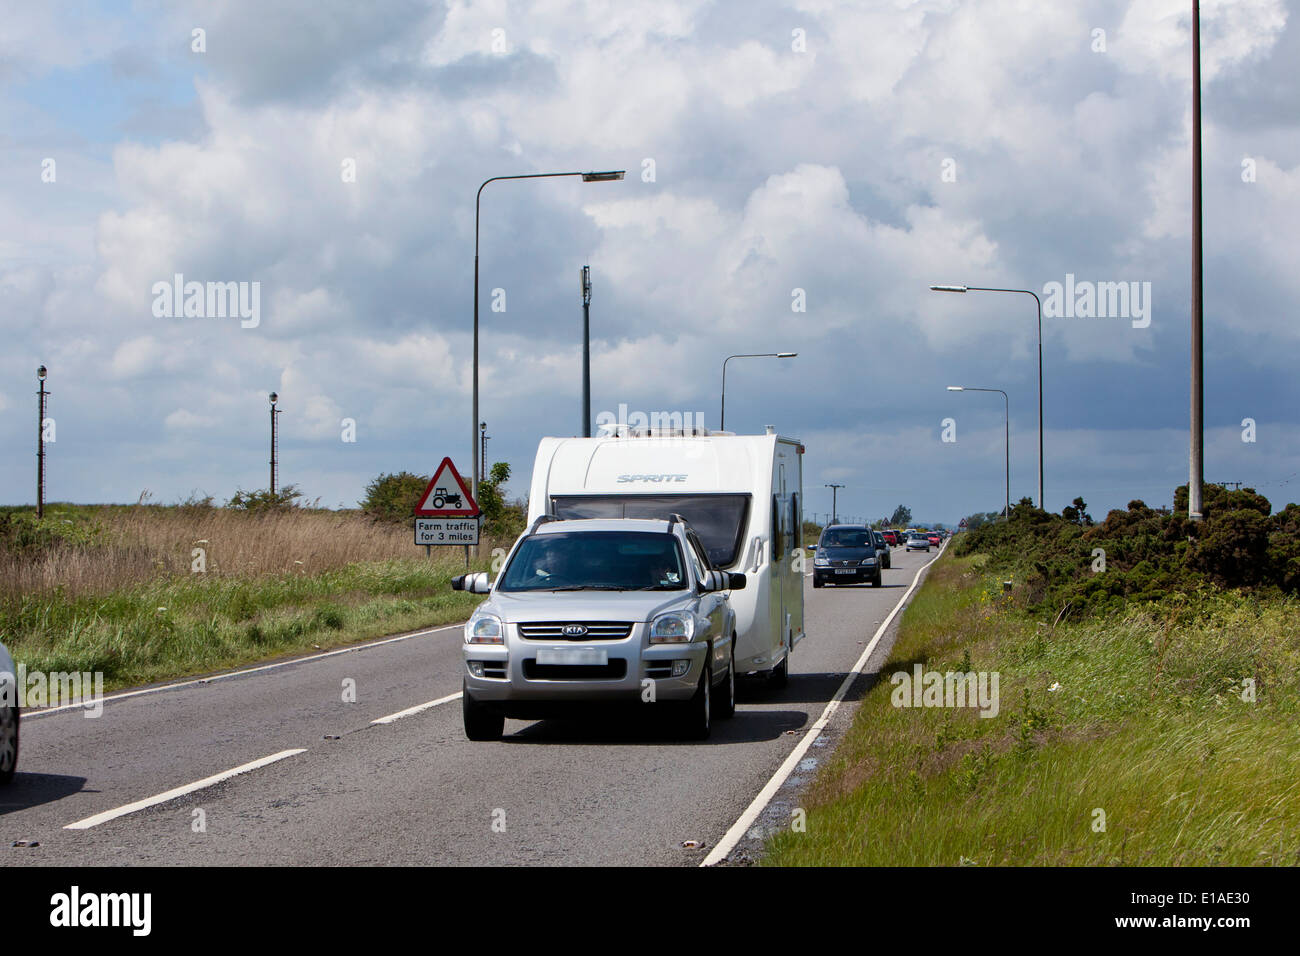 Caravaners driving up the Acle Straight to Great Yarmouth as dark storm clouds approach from the west. - Stock Image